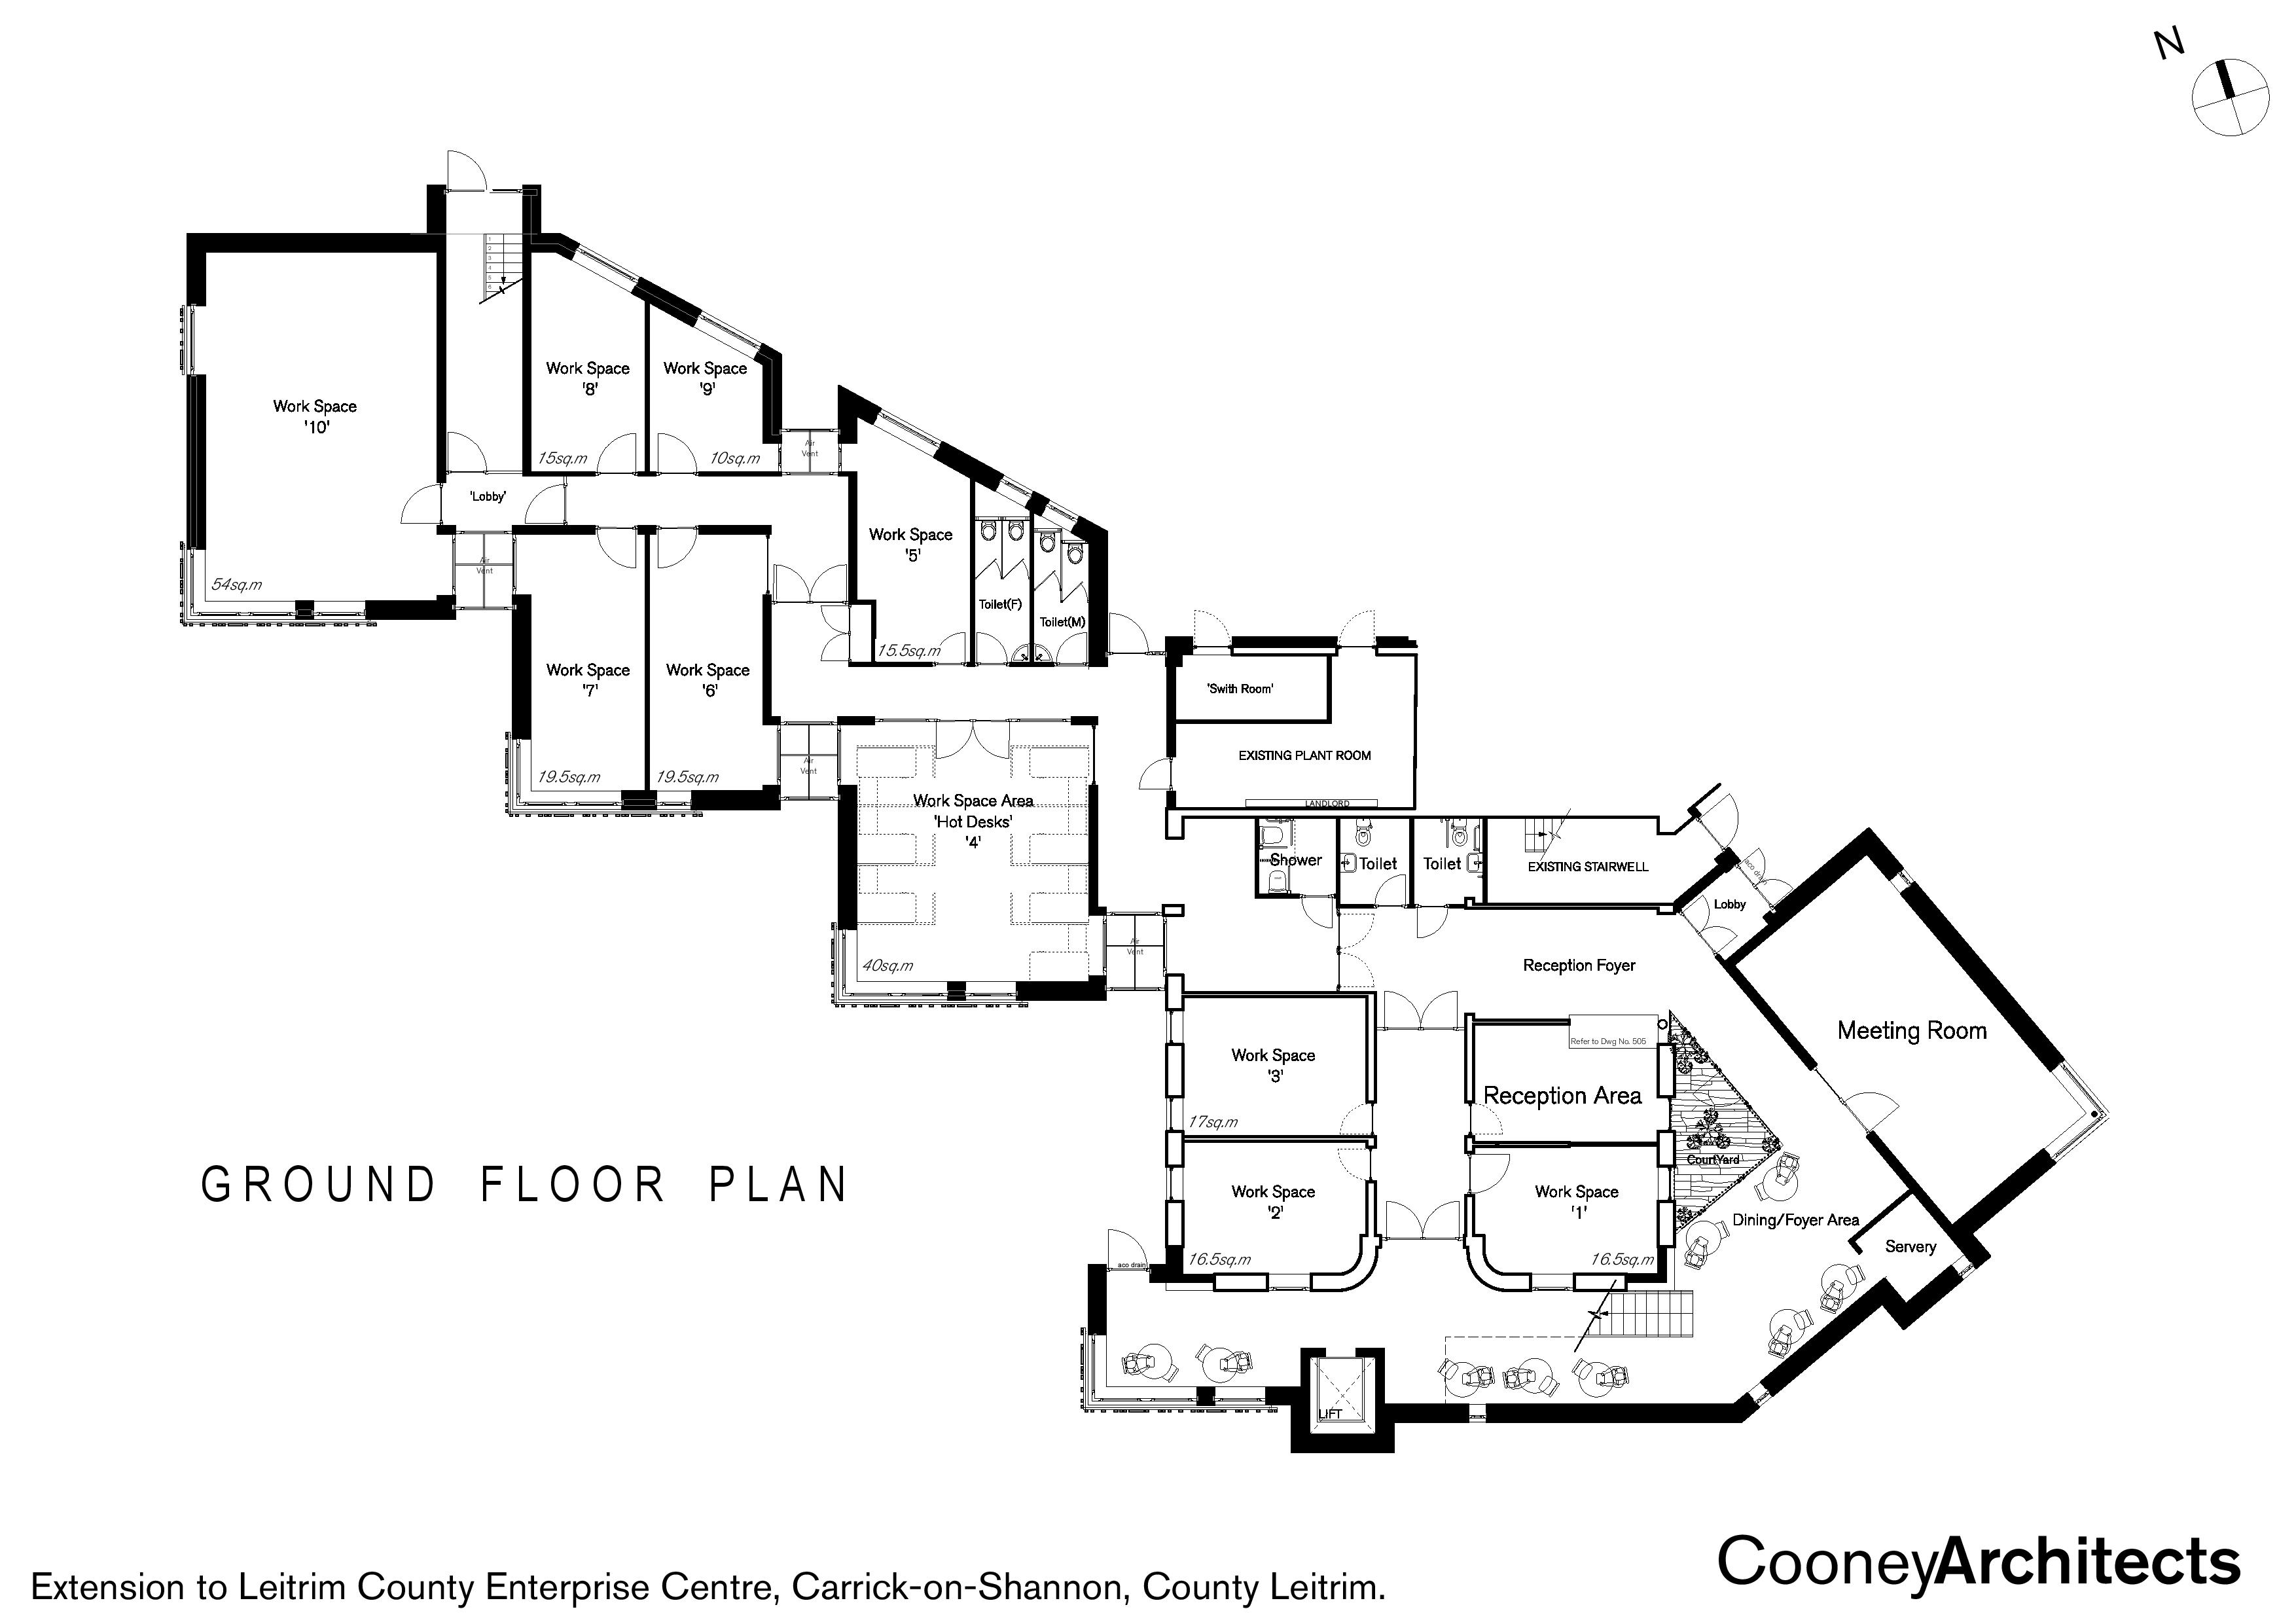 Ground Floor Plans for Innovation Centre